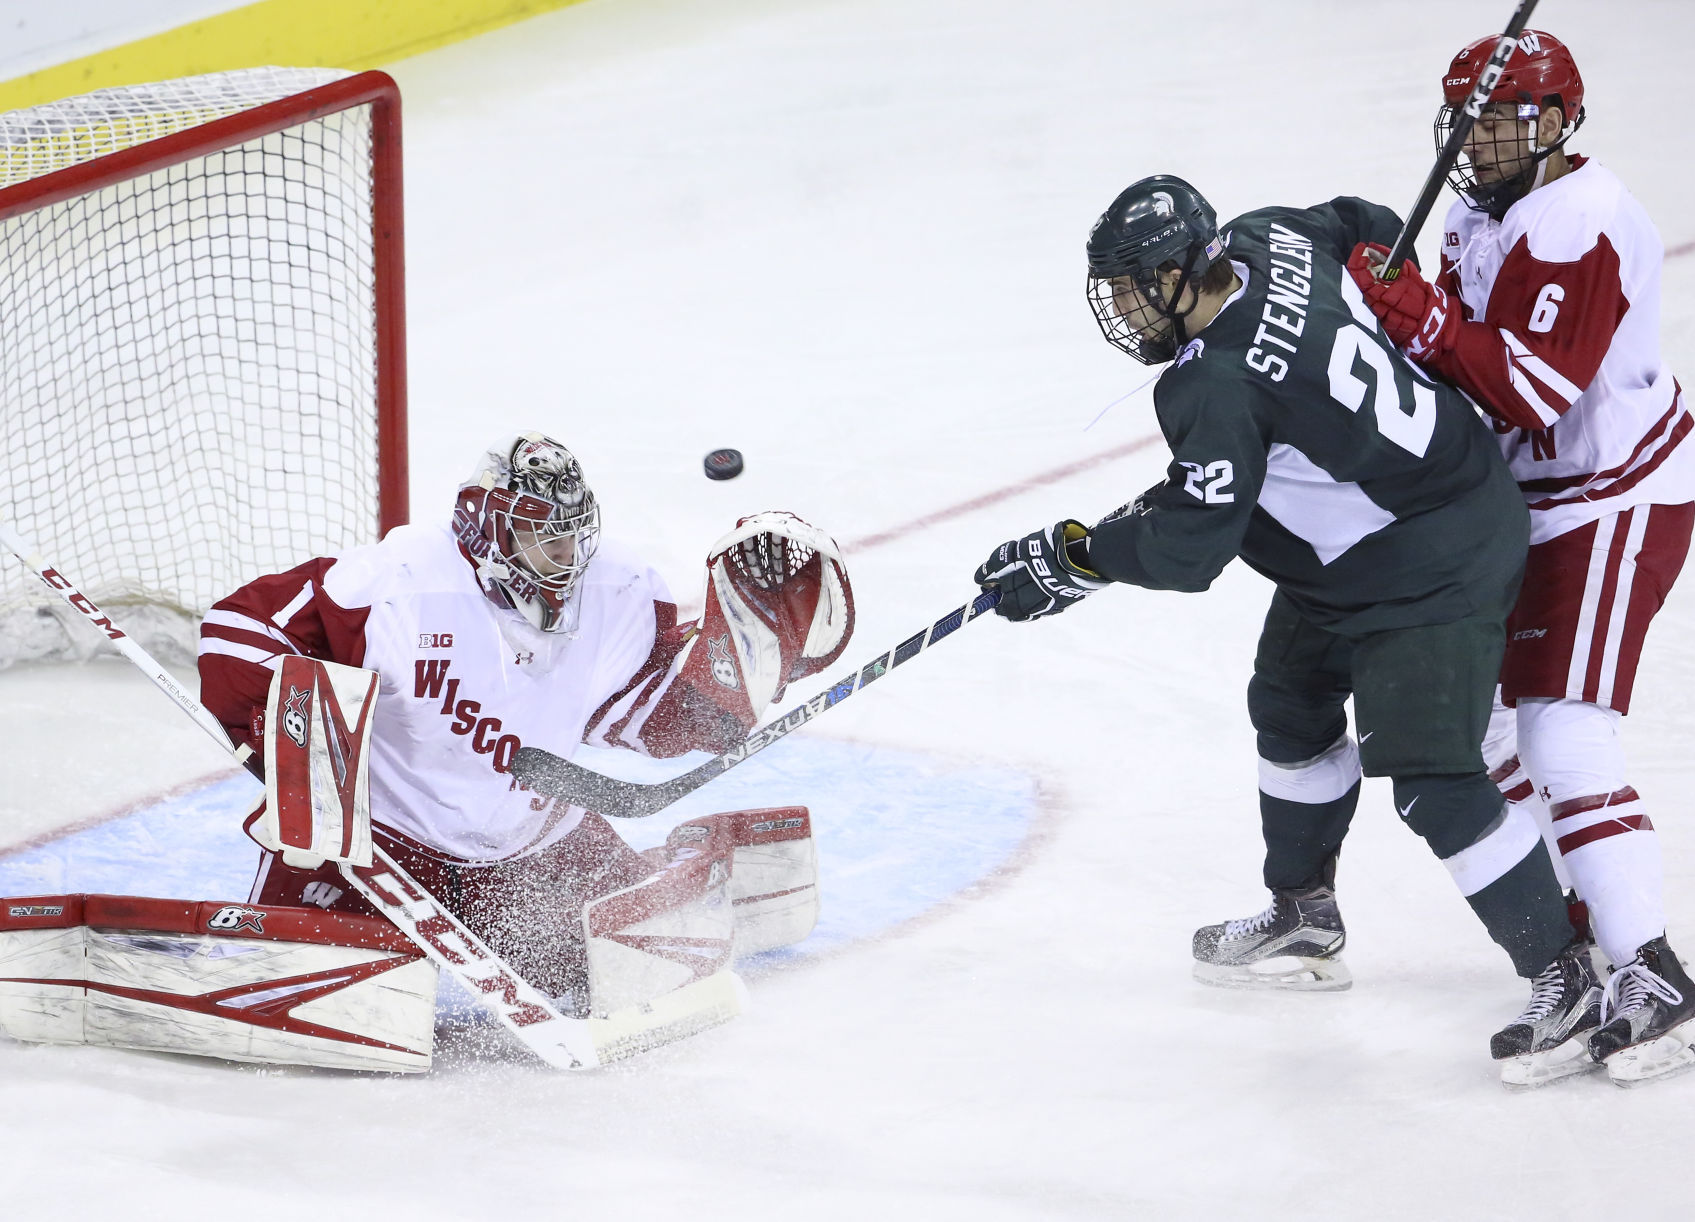 BIG10: Badgers - Goalies On More Even Footing After Wisconsin's Last Bye Weekend